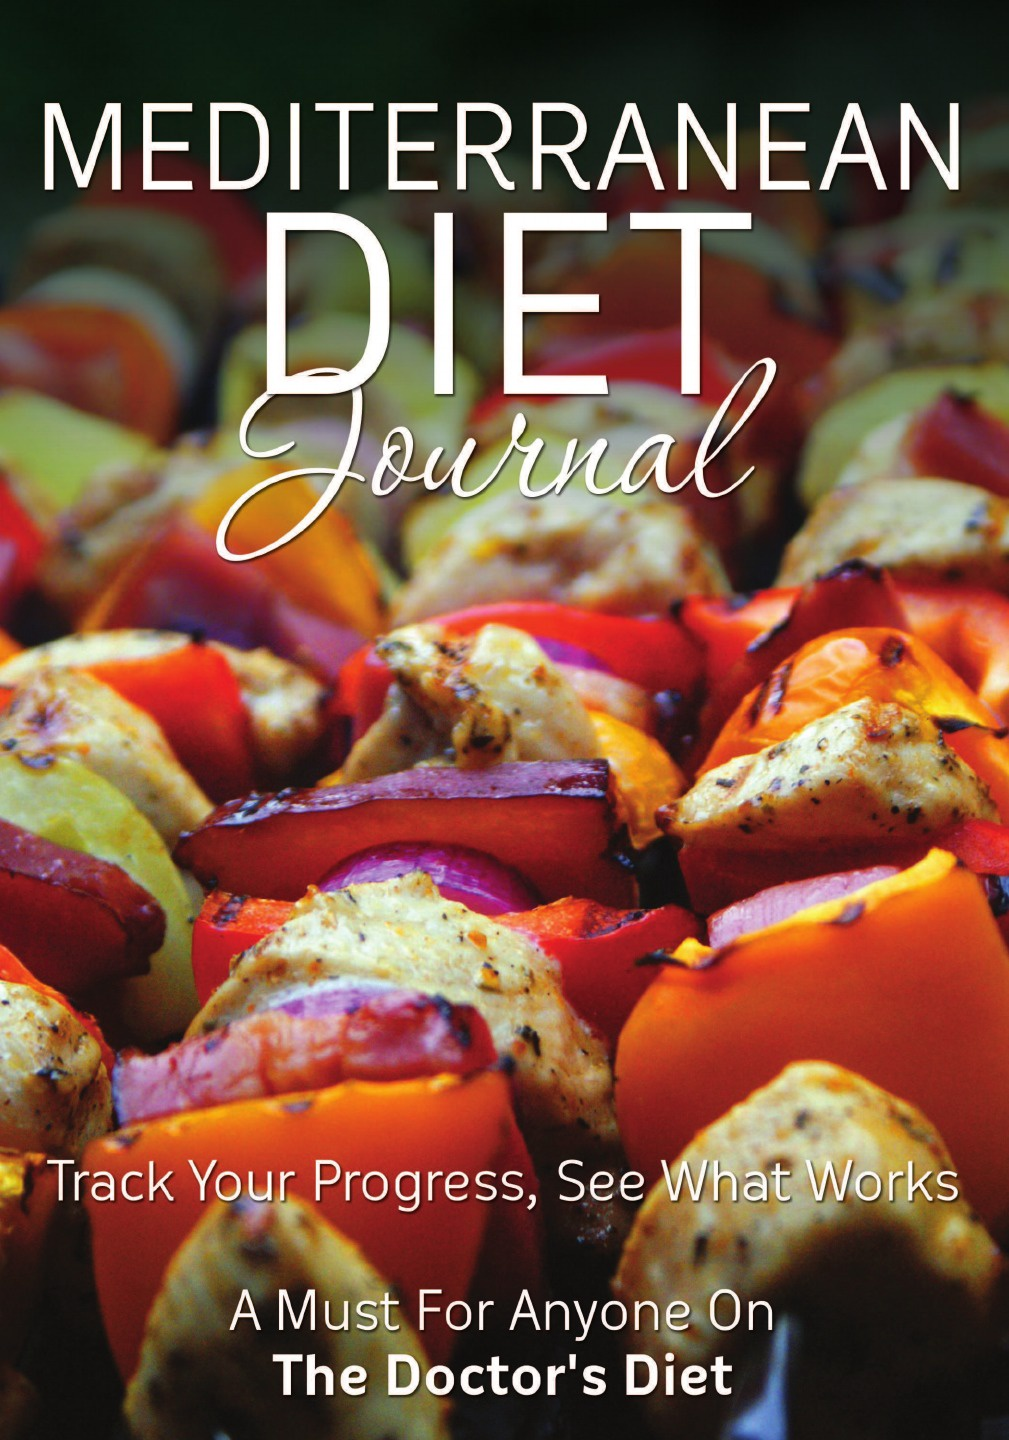 Speedy Publishing LLC Mediterranean Diet Journal. Track Your Progress See What Works: A Must for Anyone on the Mediterranean Diet